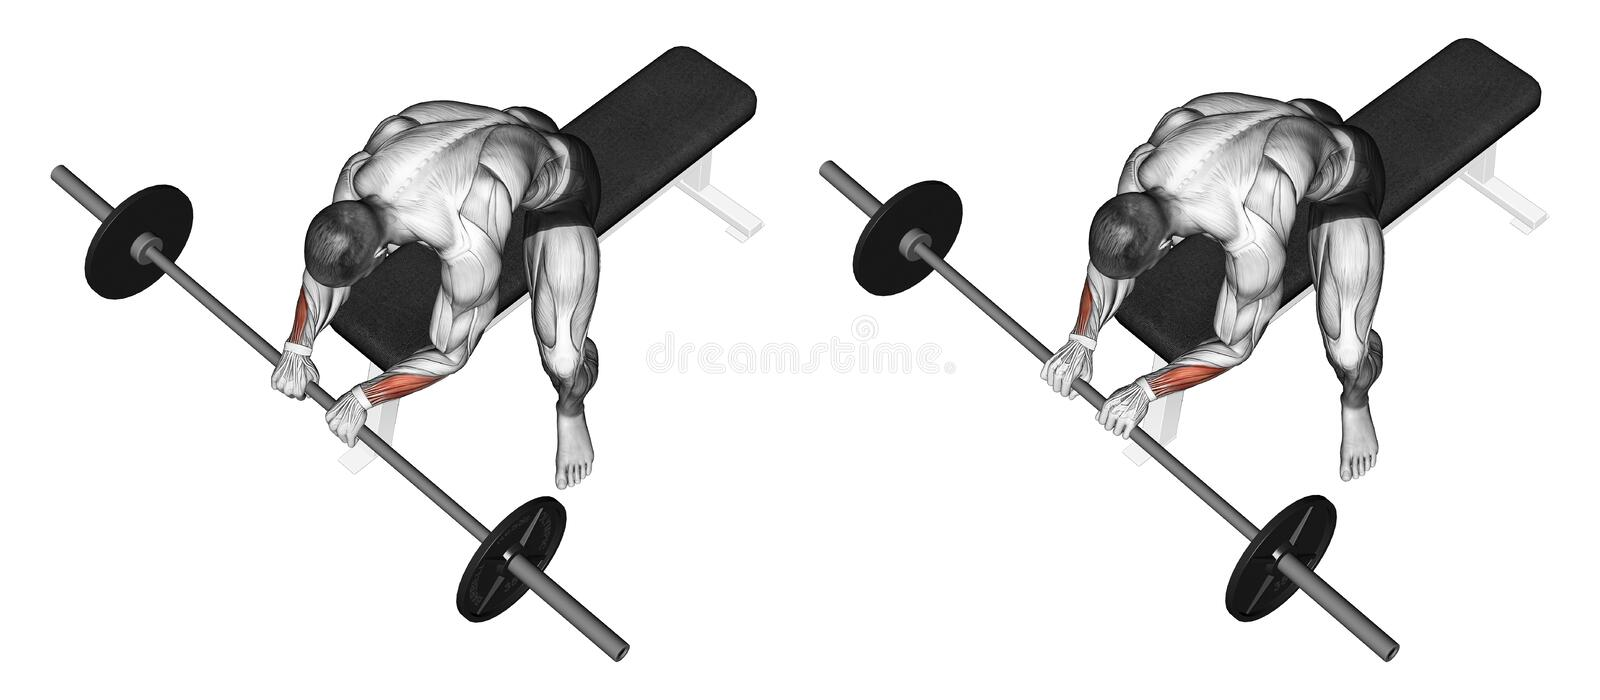 Exercising. Extension of the wrist with a barbell royalty free illustration